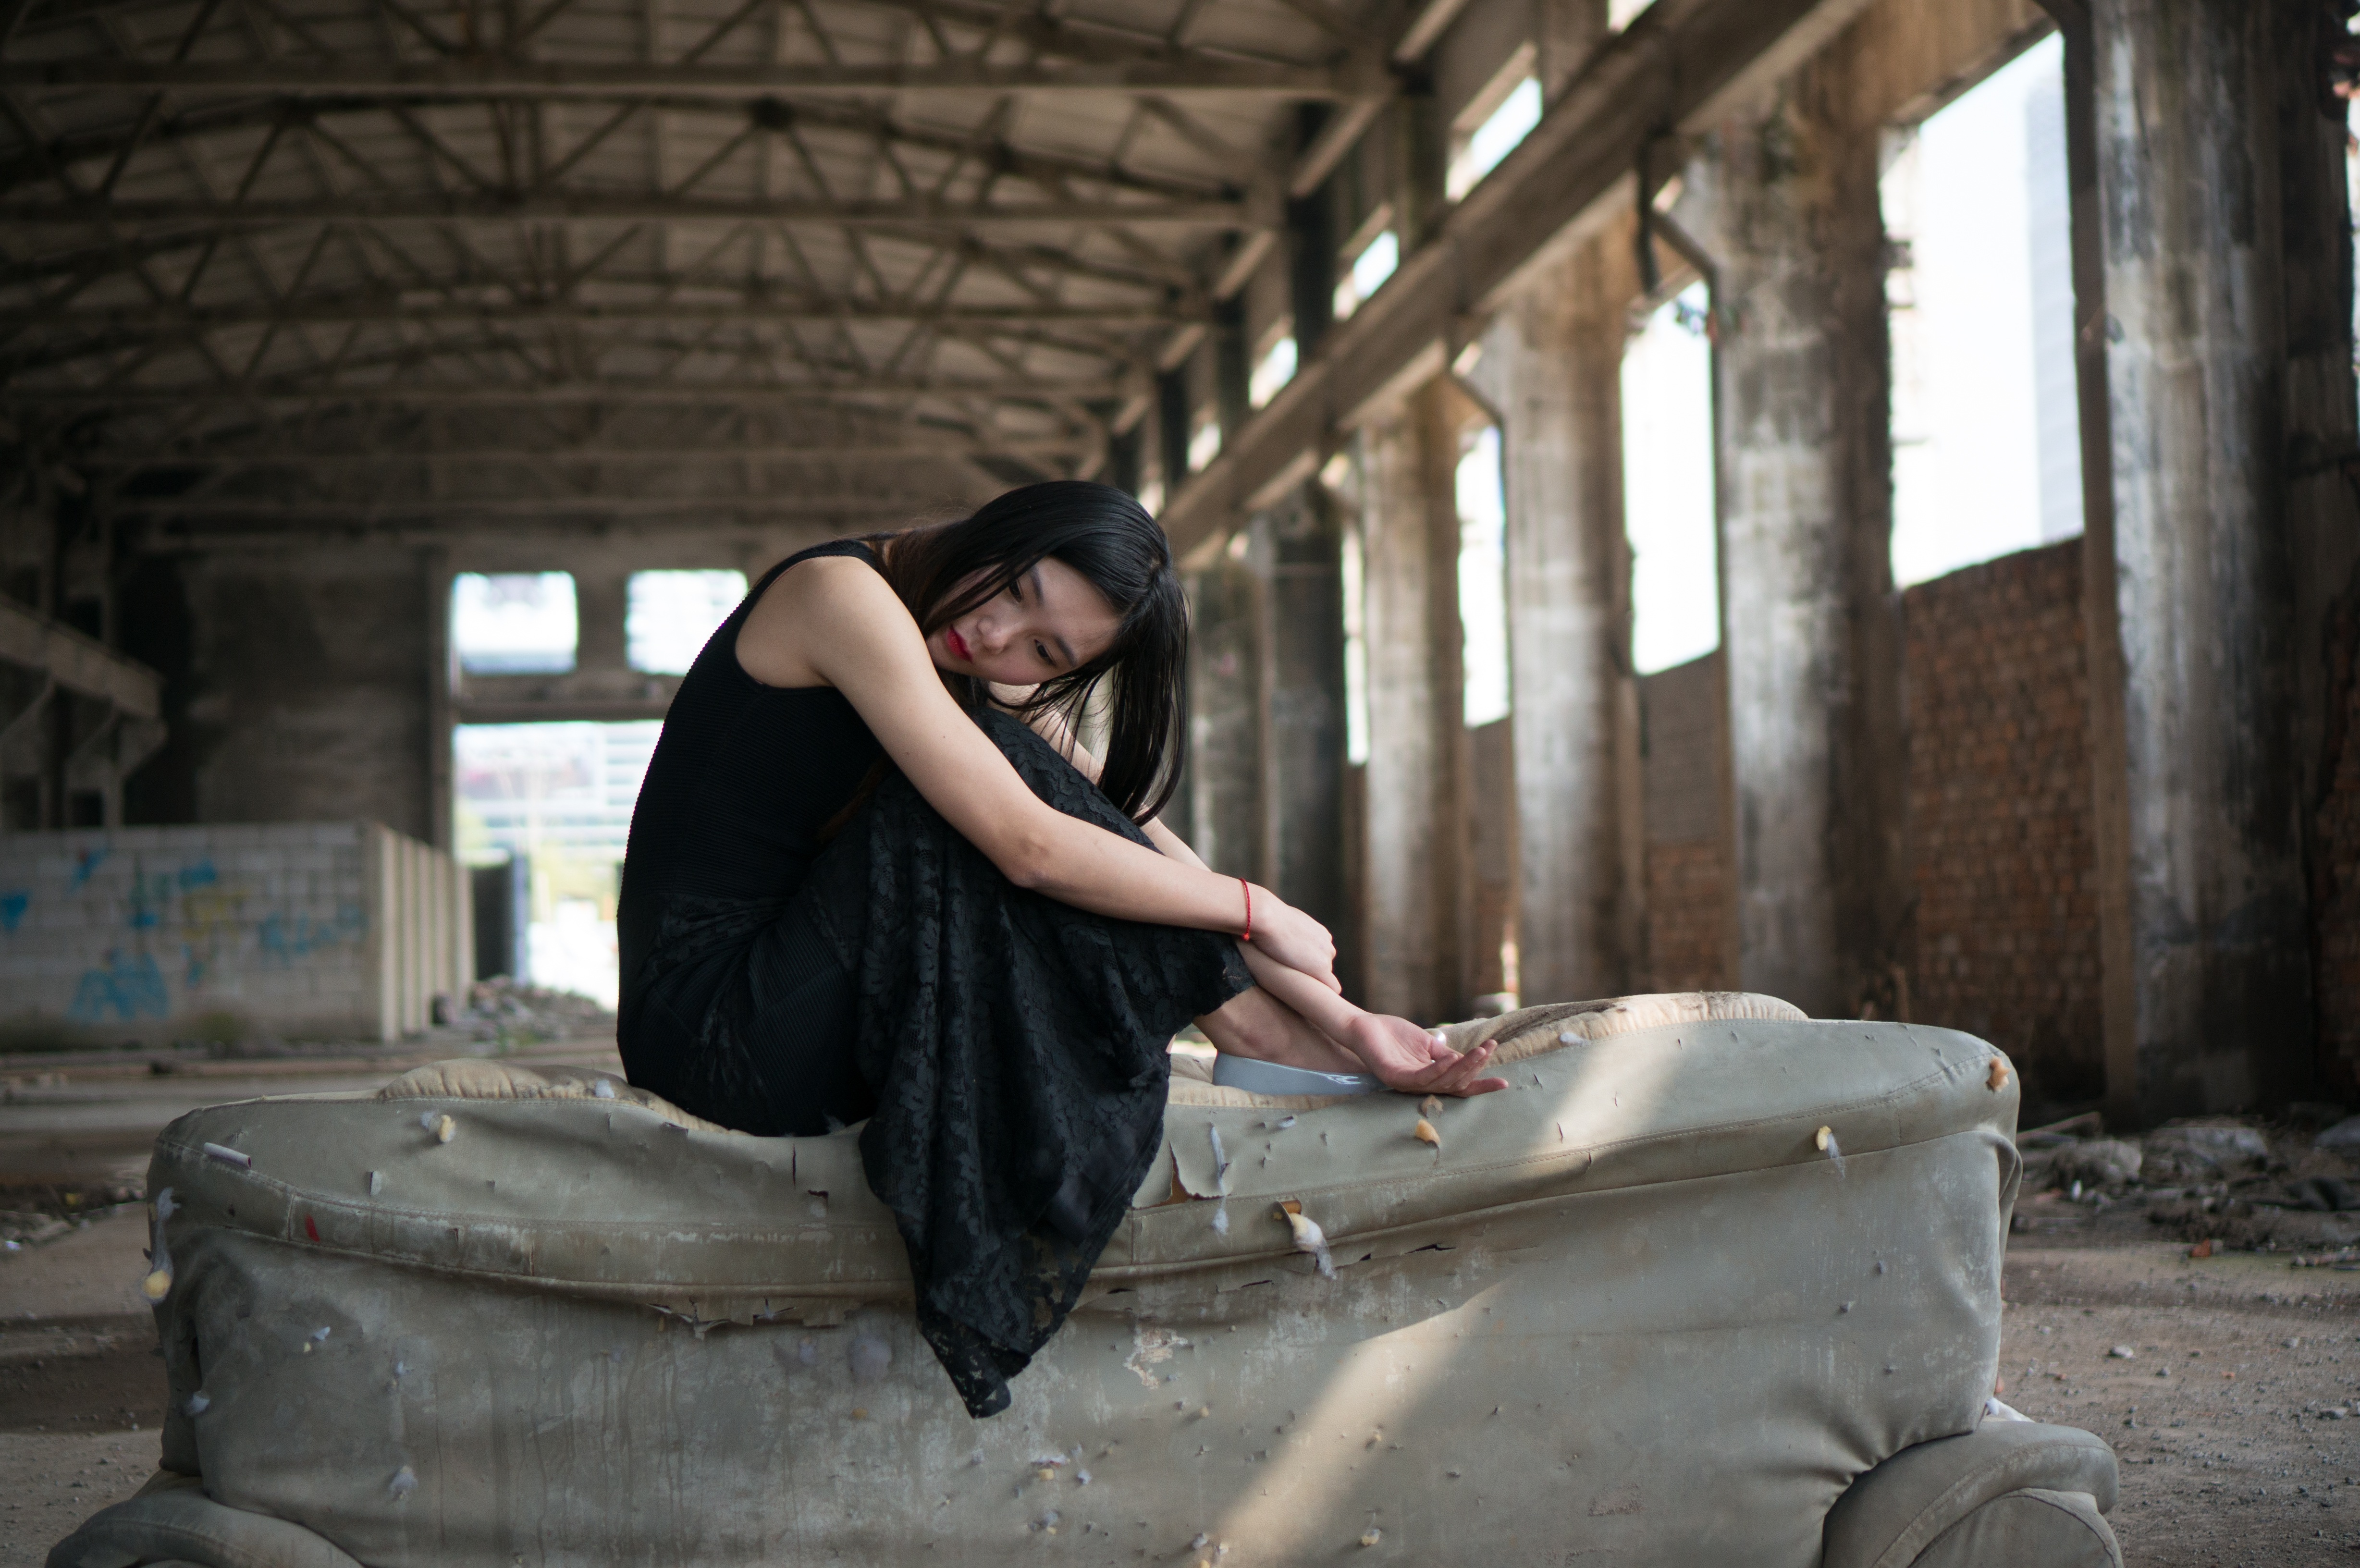 Sensual Model In An Abandoned Building Free Image